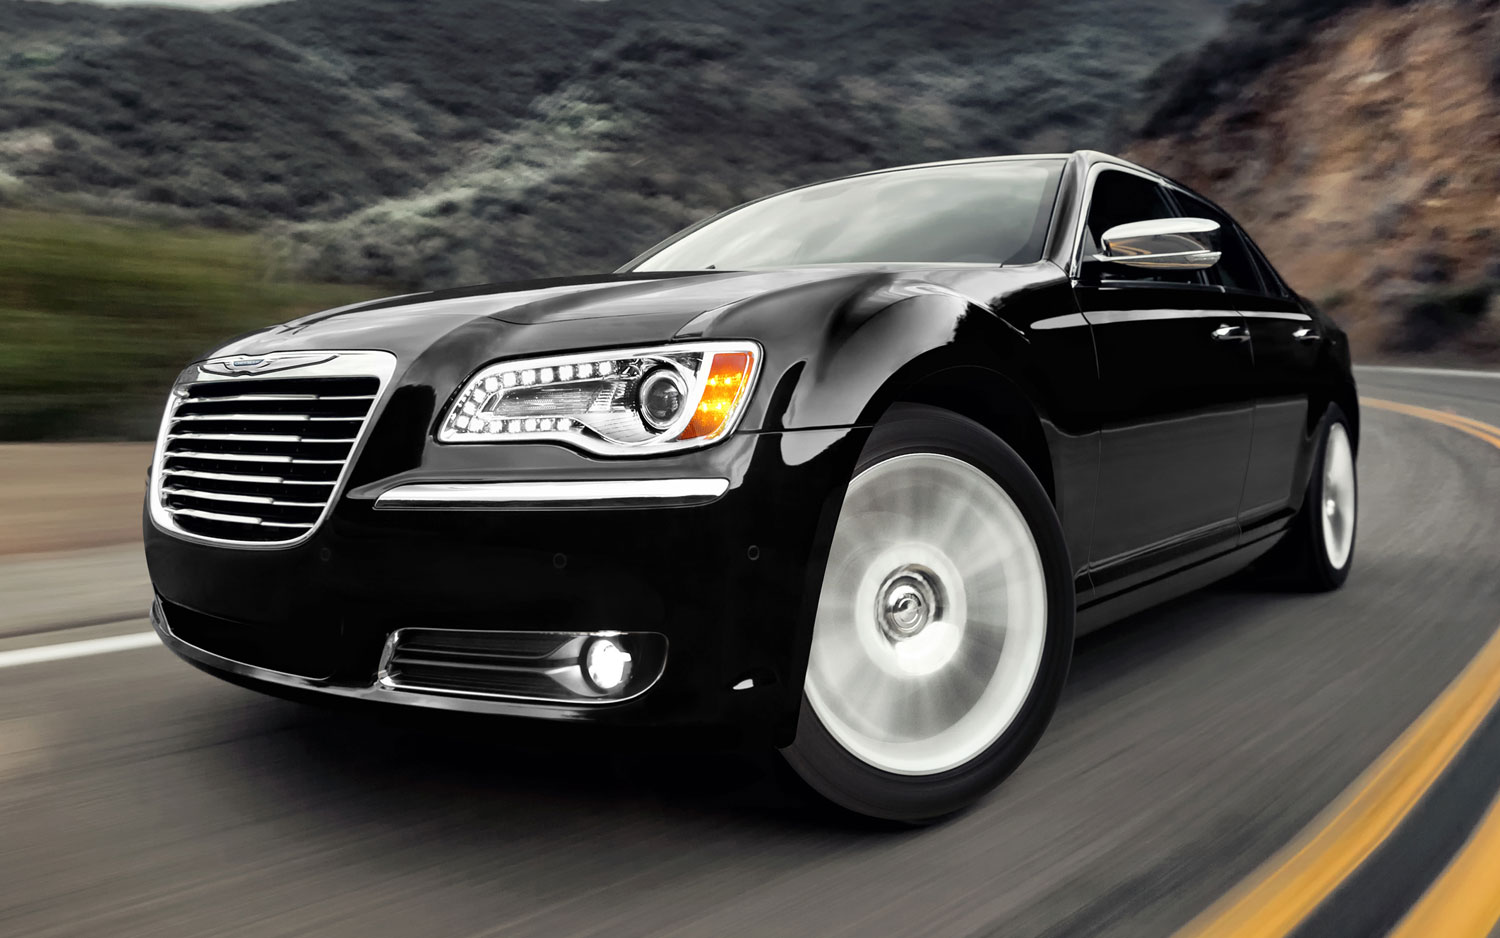 2012 Chrysler 300C Front View1